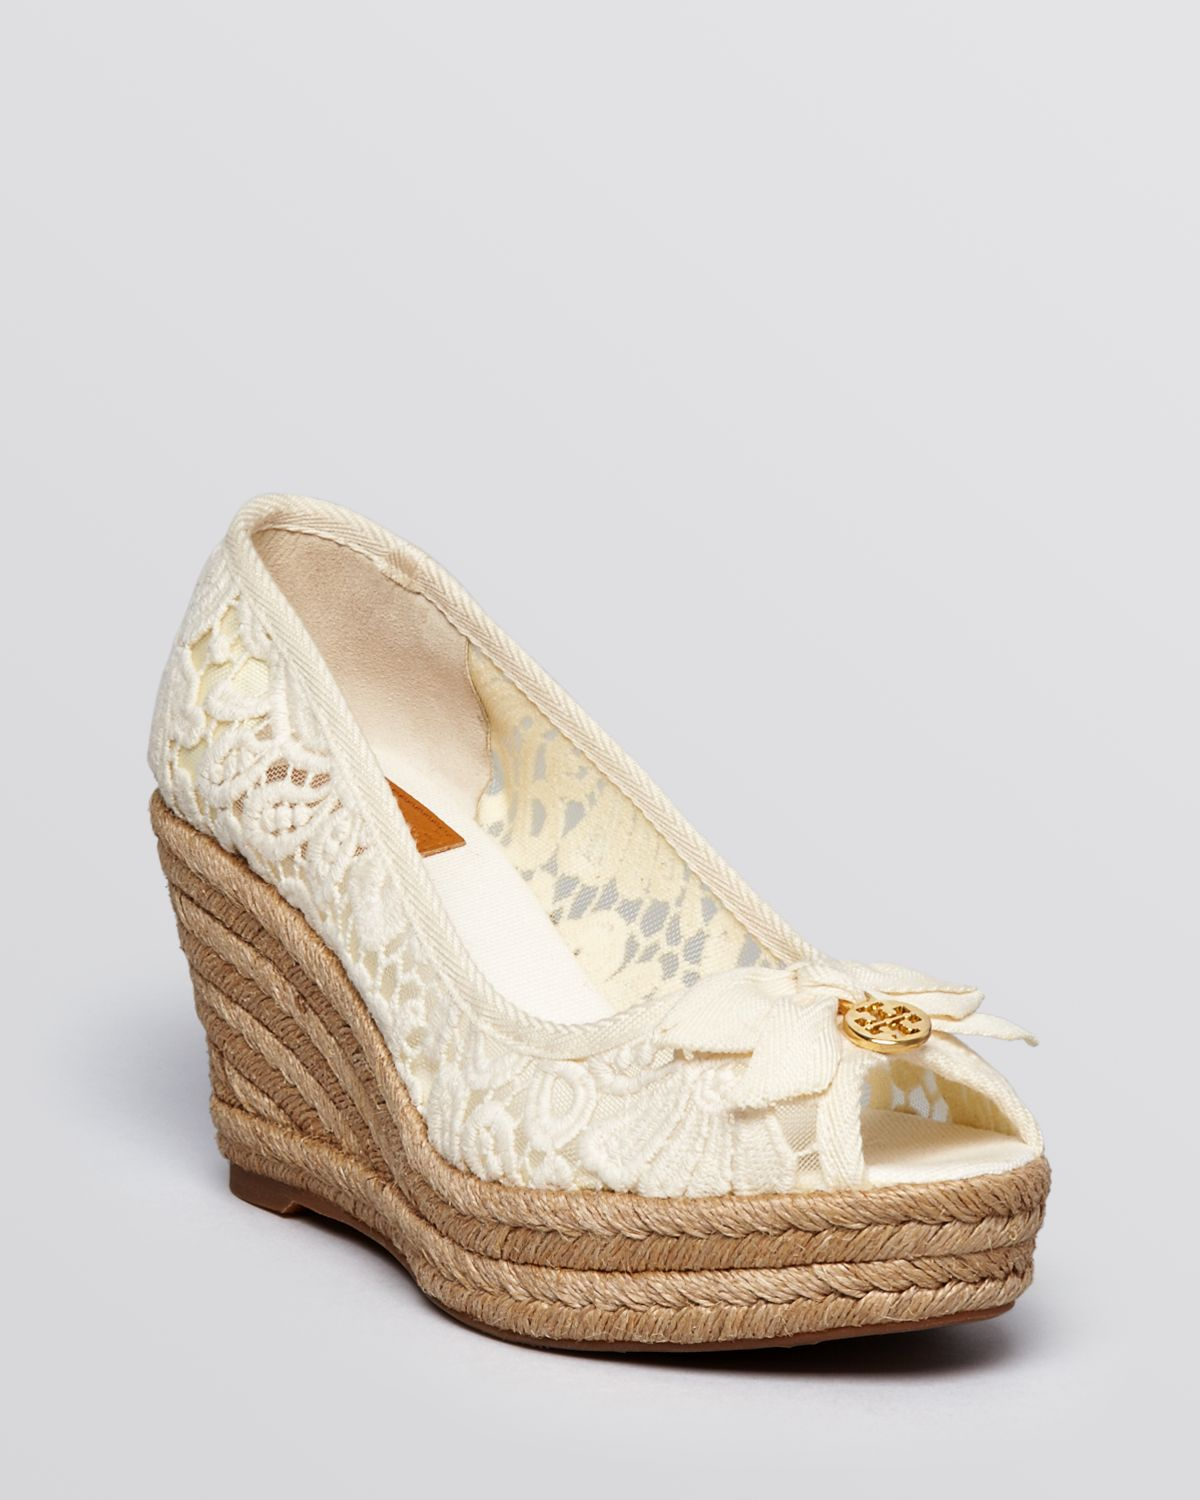 sale get to buy discount recommend Tory Burch Lace Platform Pumps new arrival for sale outlet online shop outlet visa payment urw8lSfuZ8